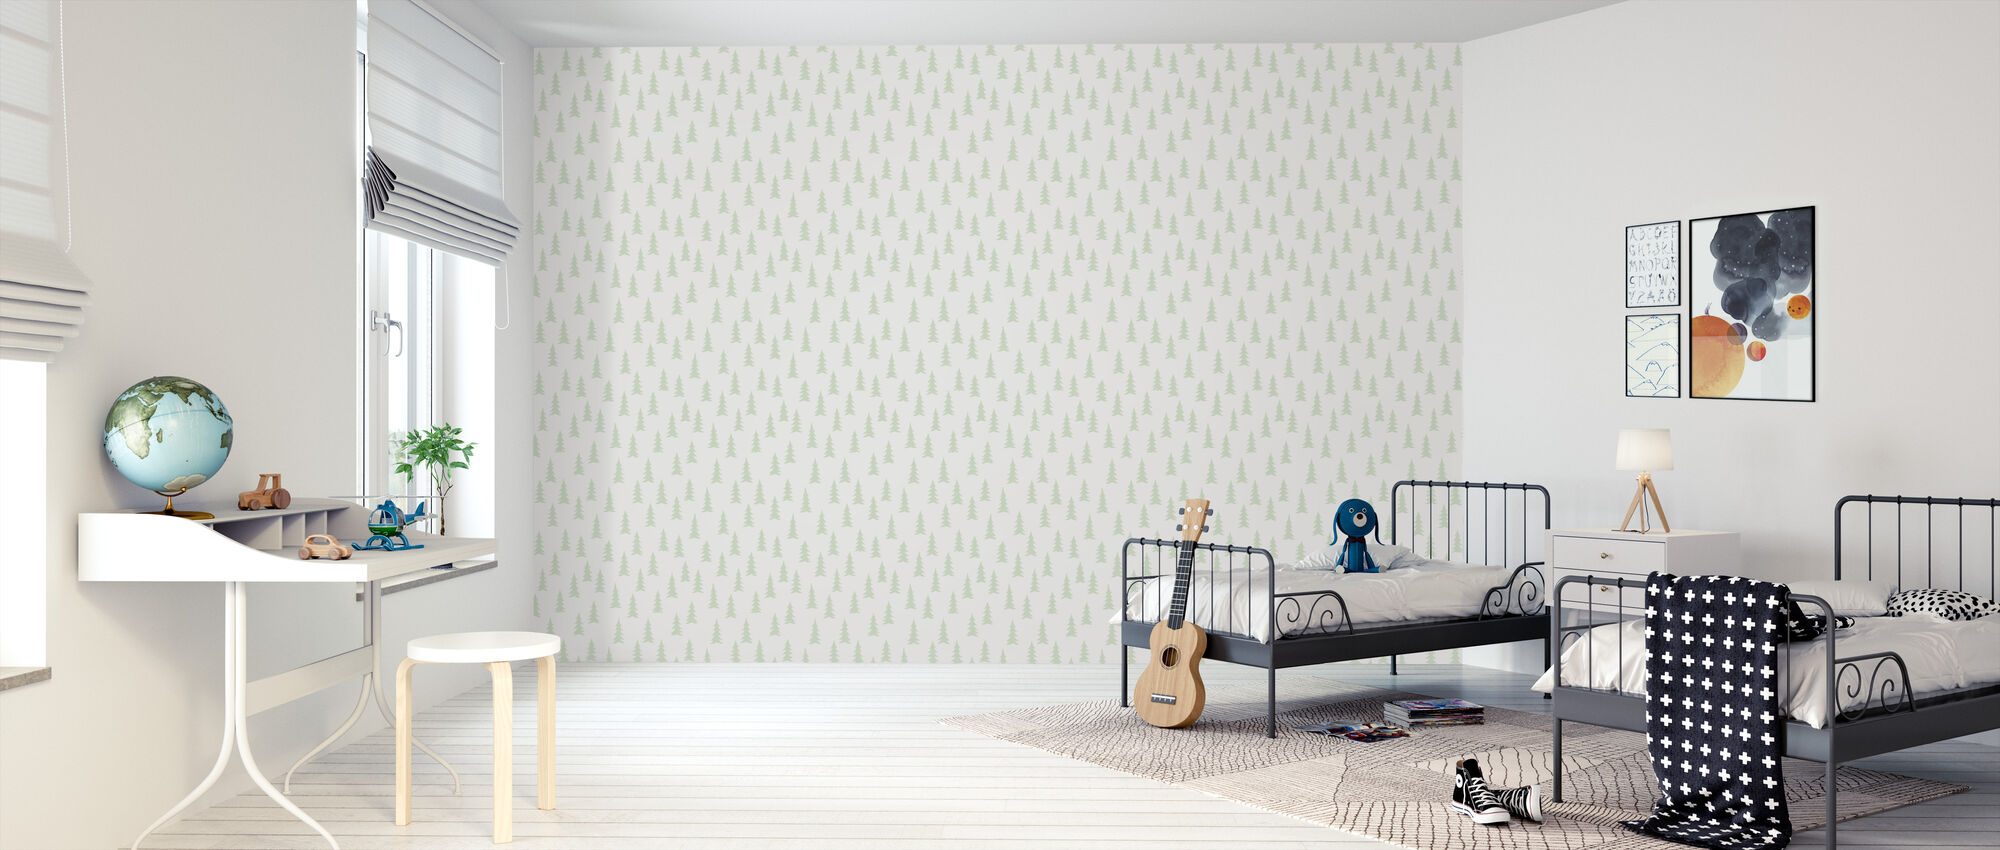 Gran - Saltsten - Wallpaper - Kids Room